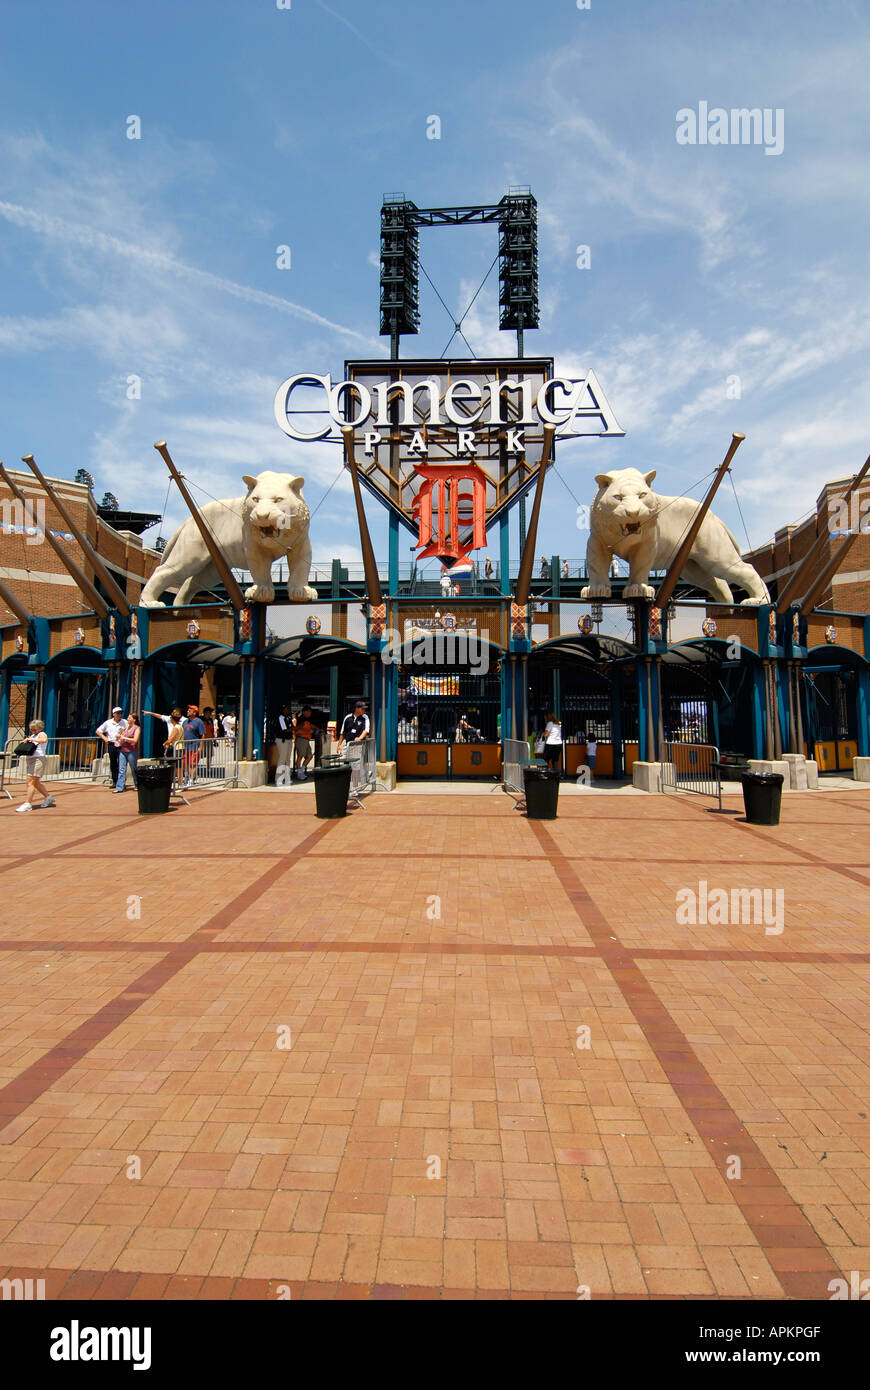 Comerica Ball Park home of the Detroit Tigers professional baseball team - Stock Image